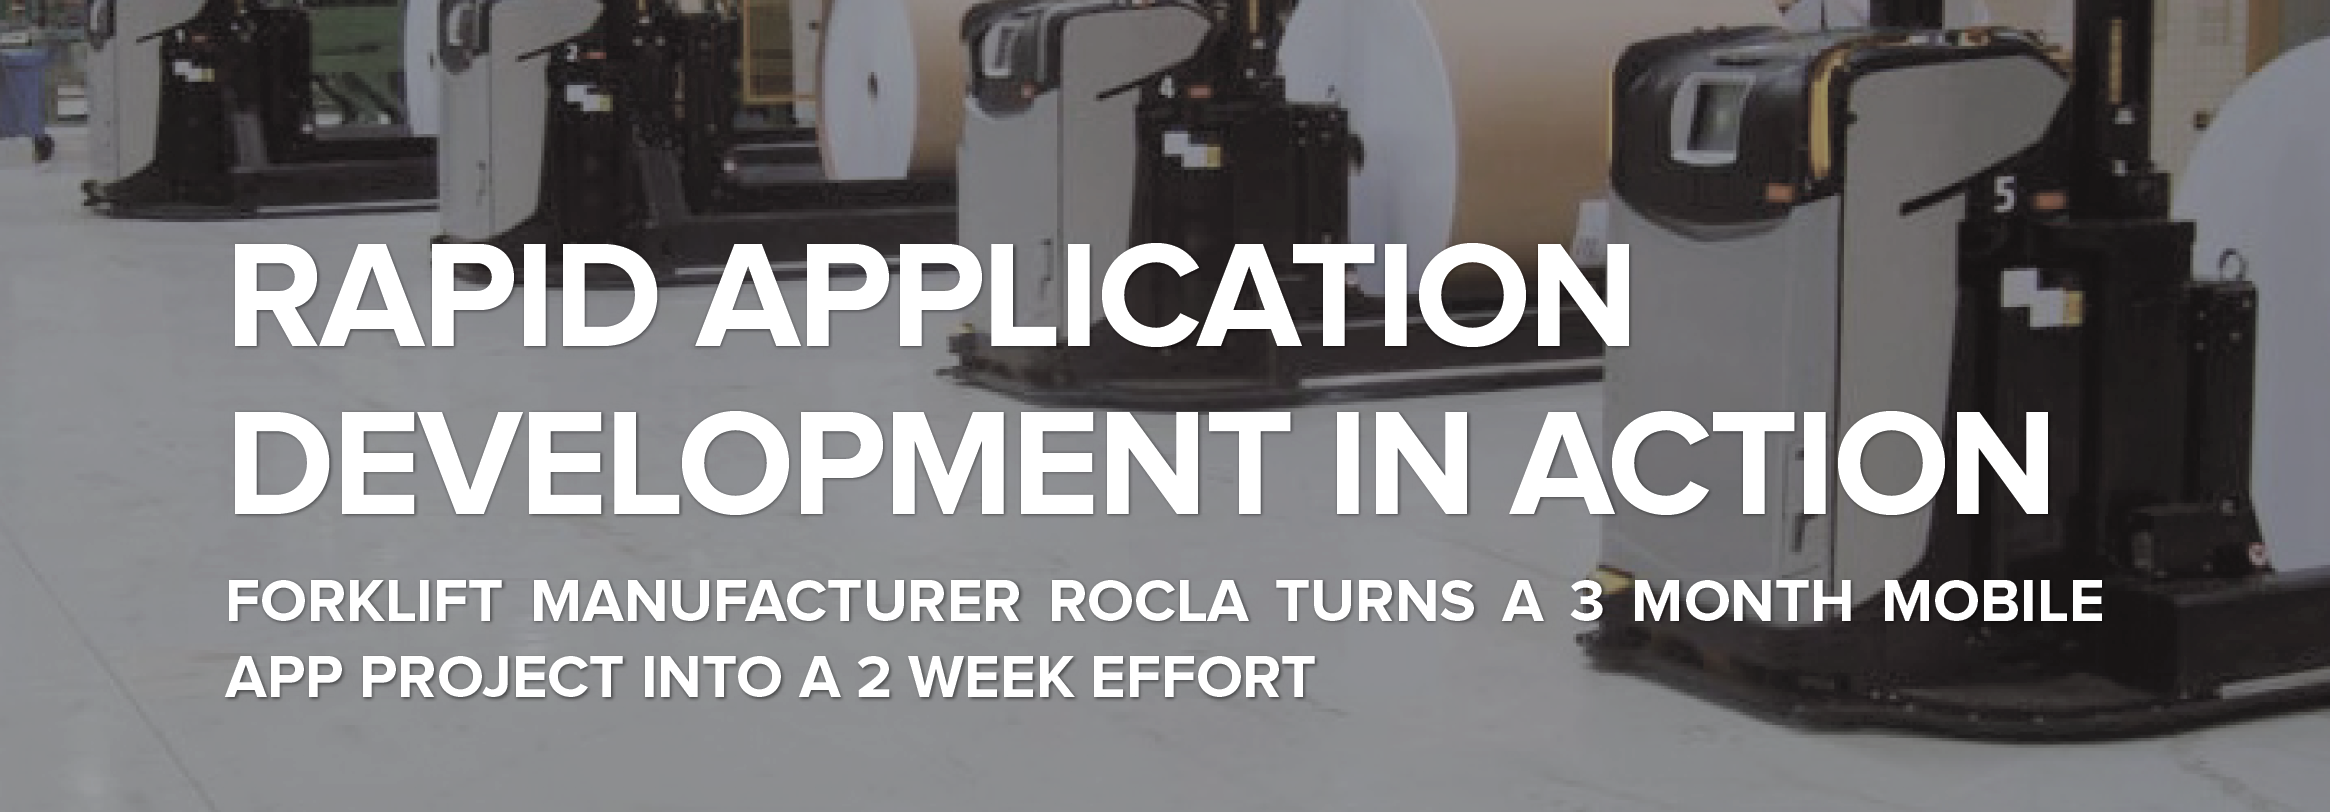 Rapid Application Development In Action - How Mitsubishi's Rocla Delivered 3 Month Mobile App Project in 2 Weeks